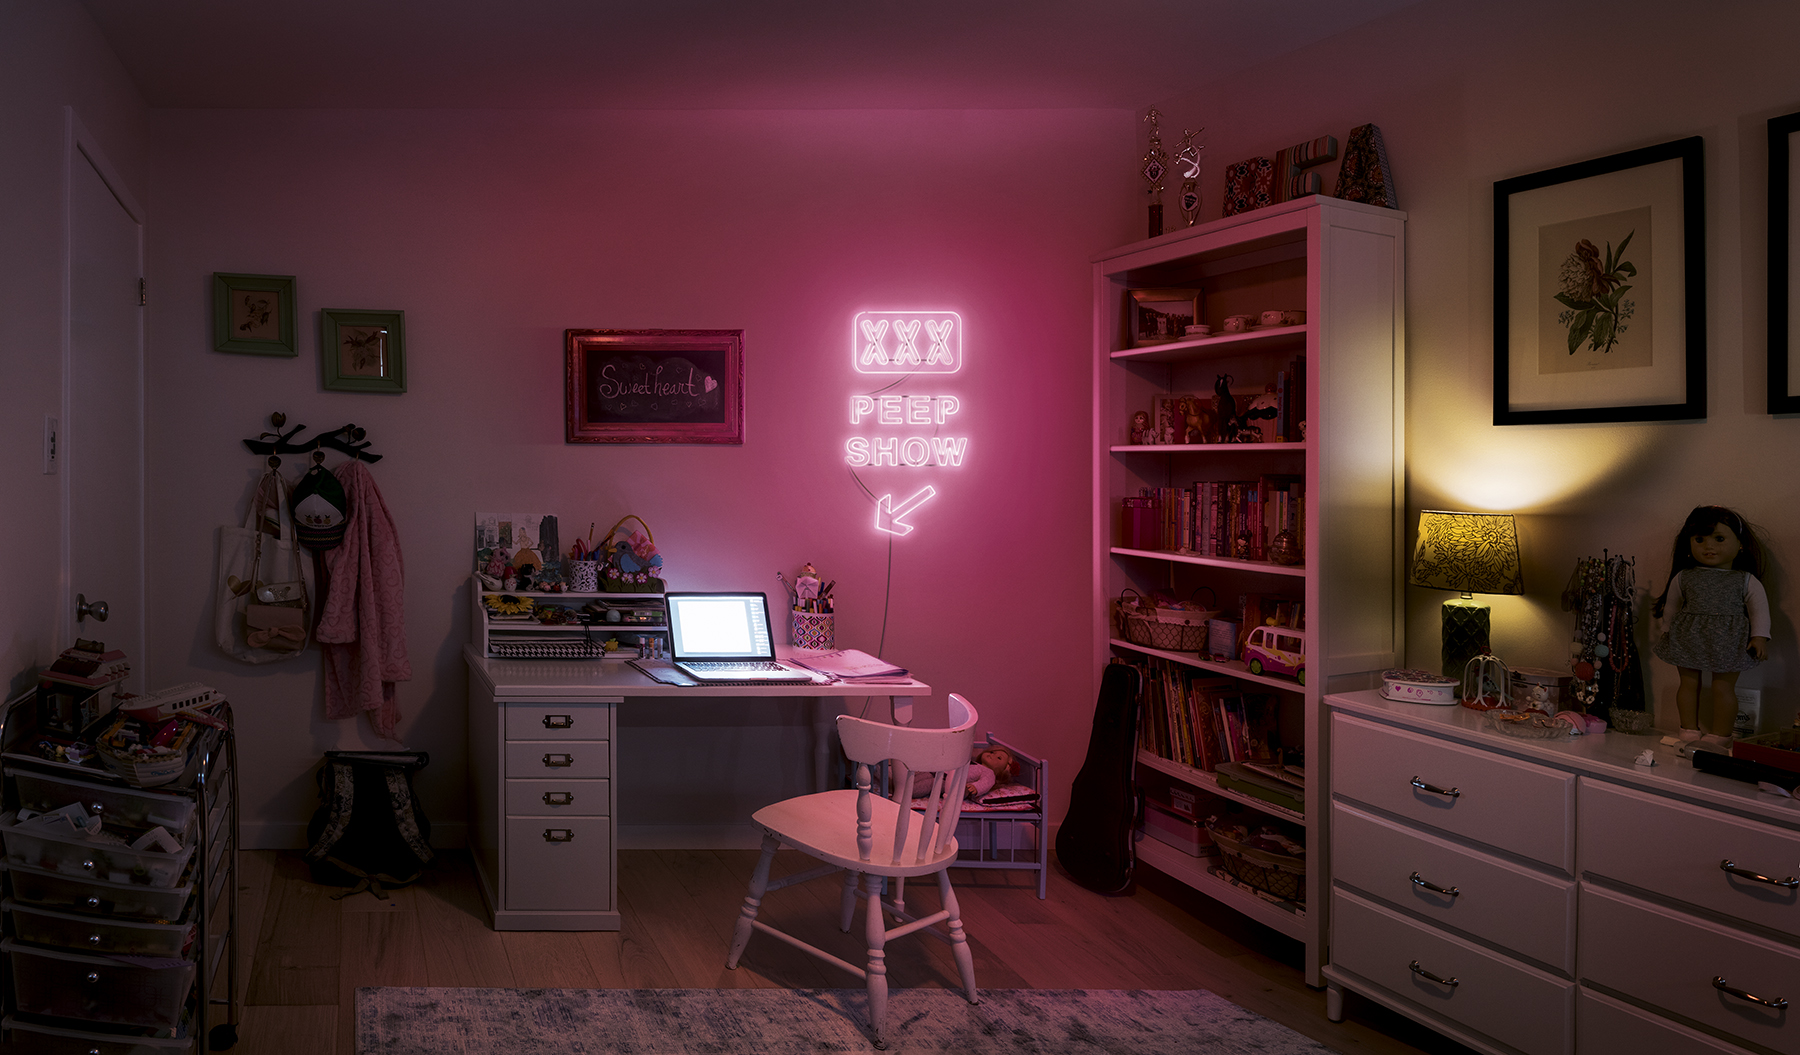 7104_Charity_Campaign_Bedroom_R6_RGB